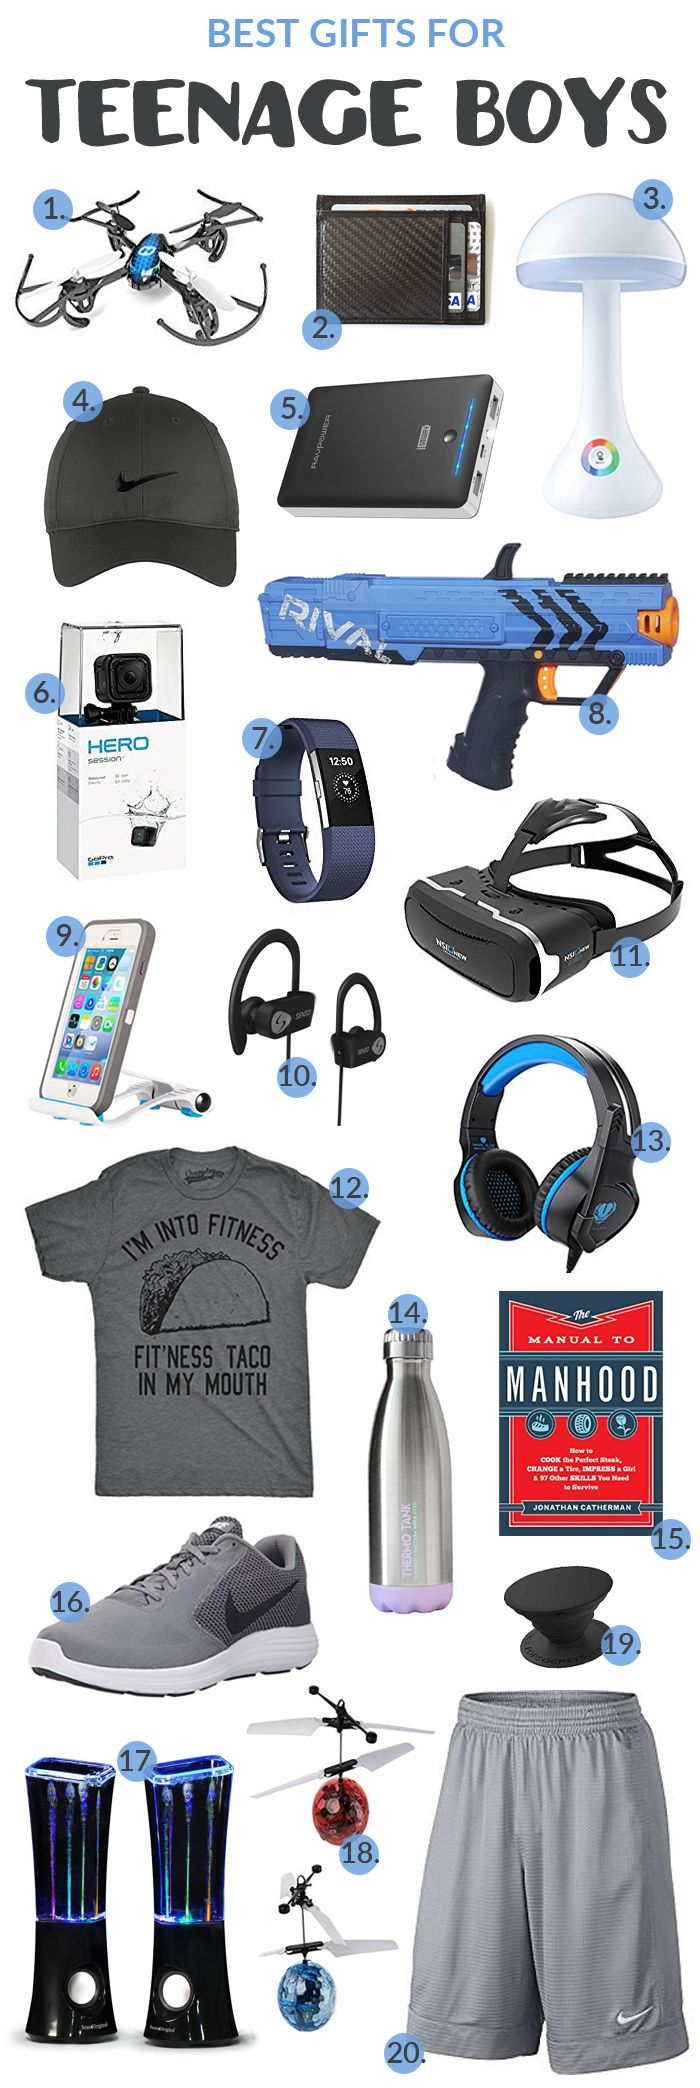 teenage boy gift guide need ideas for what to get a teenage boy for a gift for christmas his birthday or any other occasion the best gift idea for him